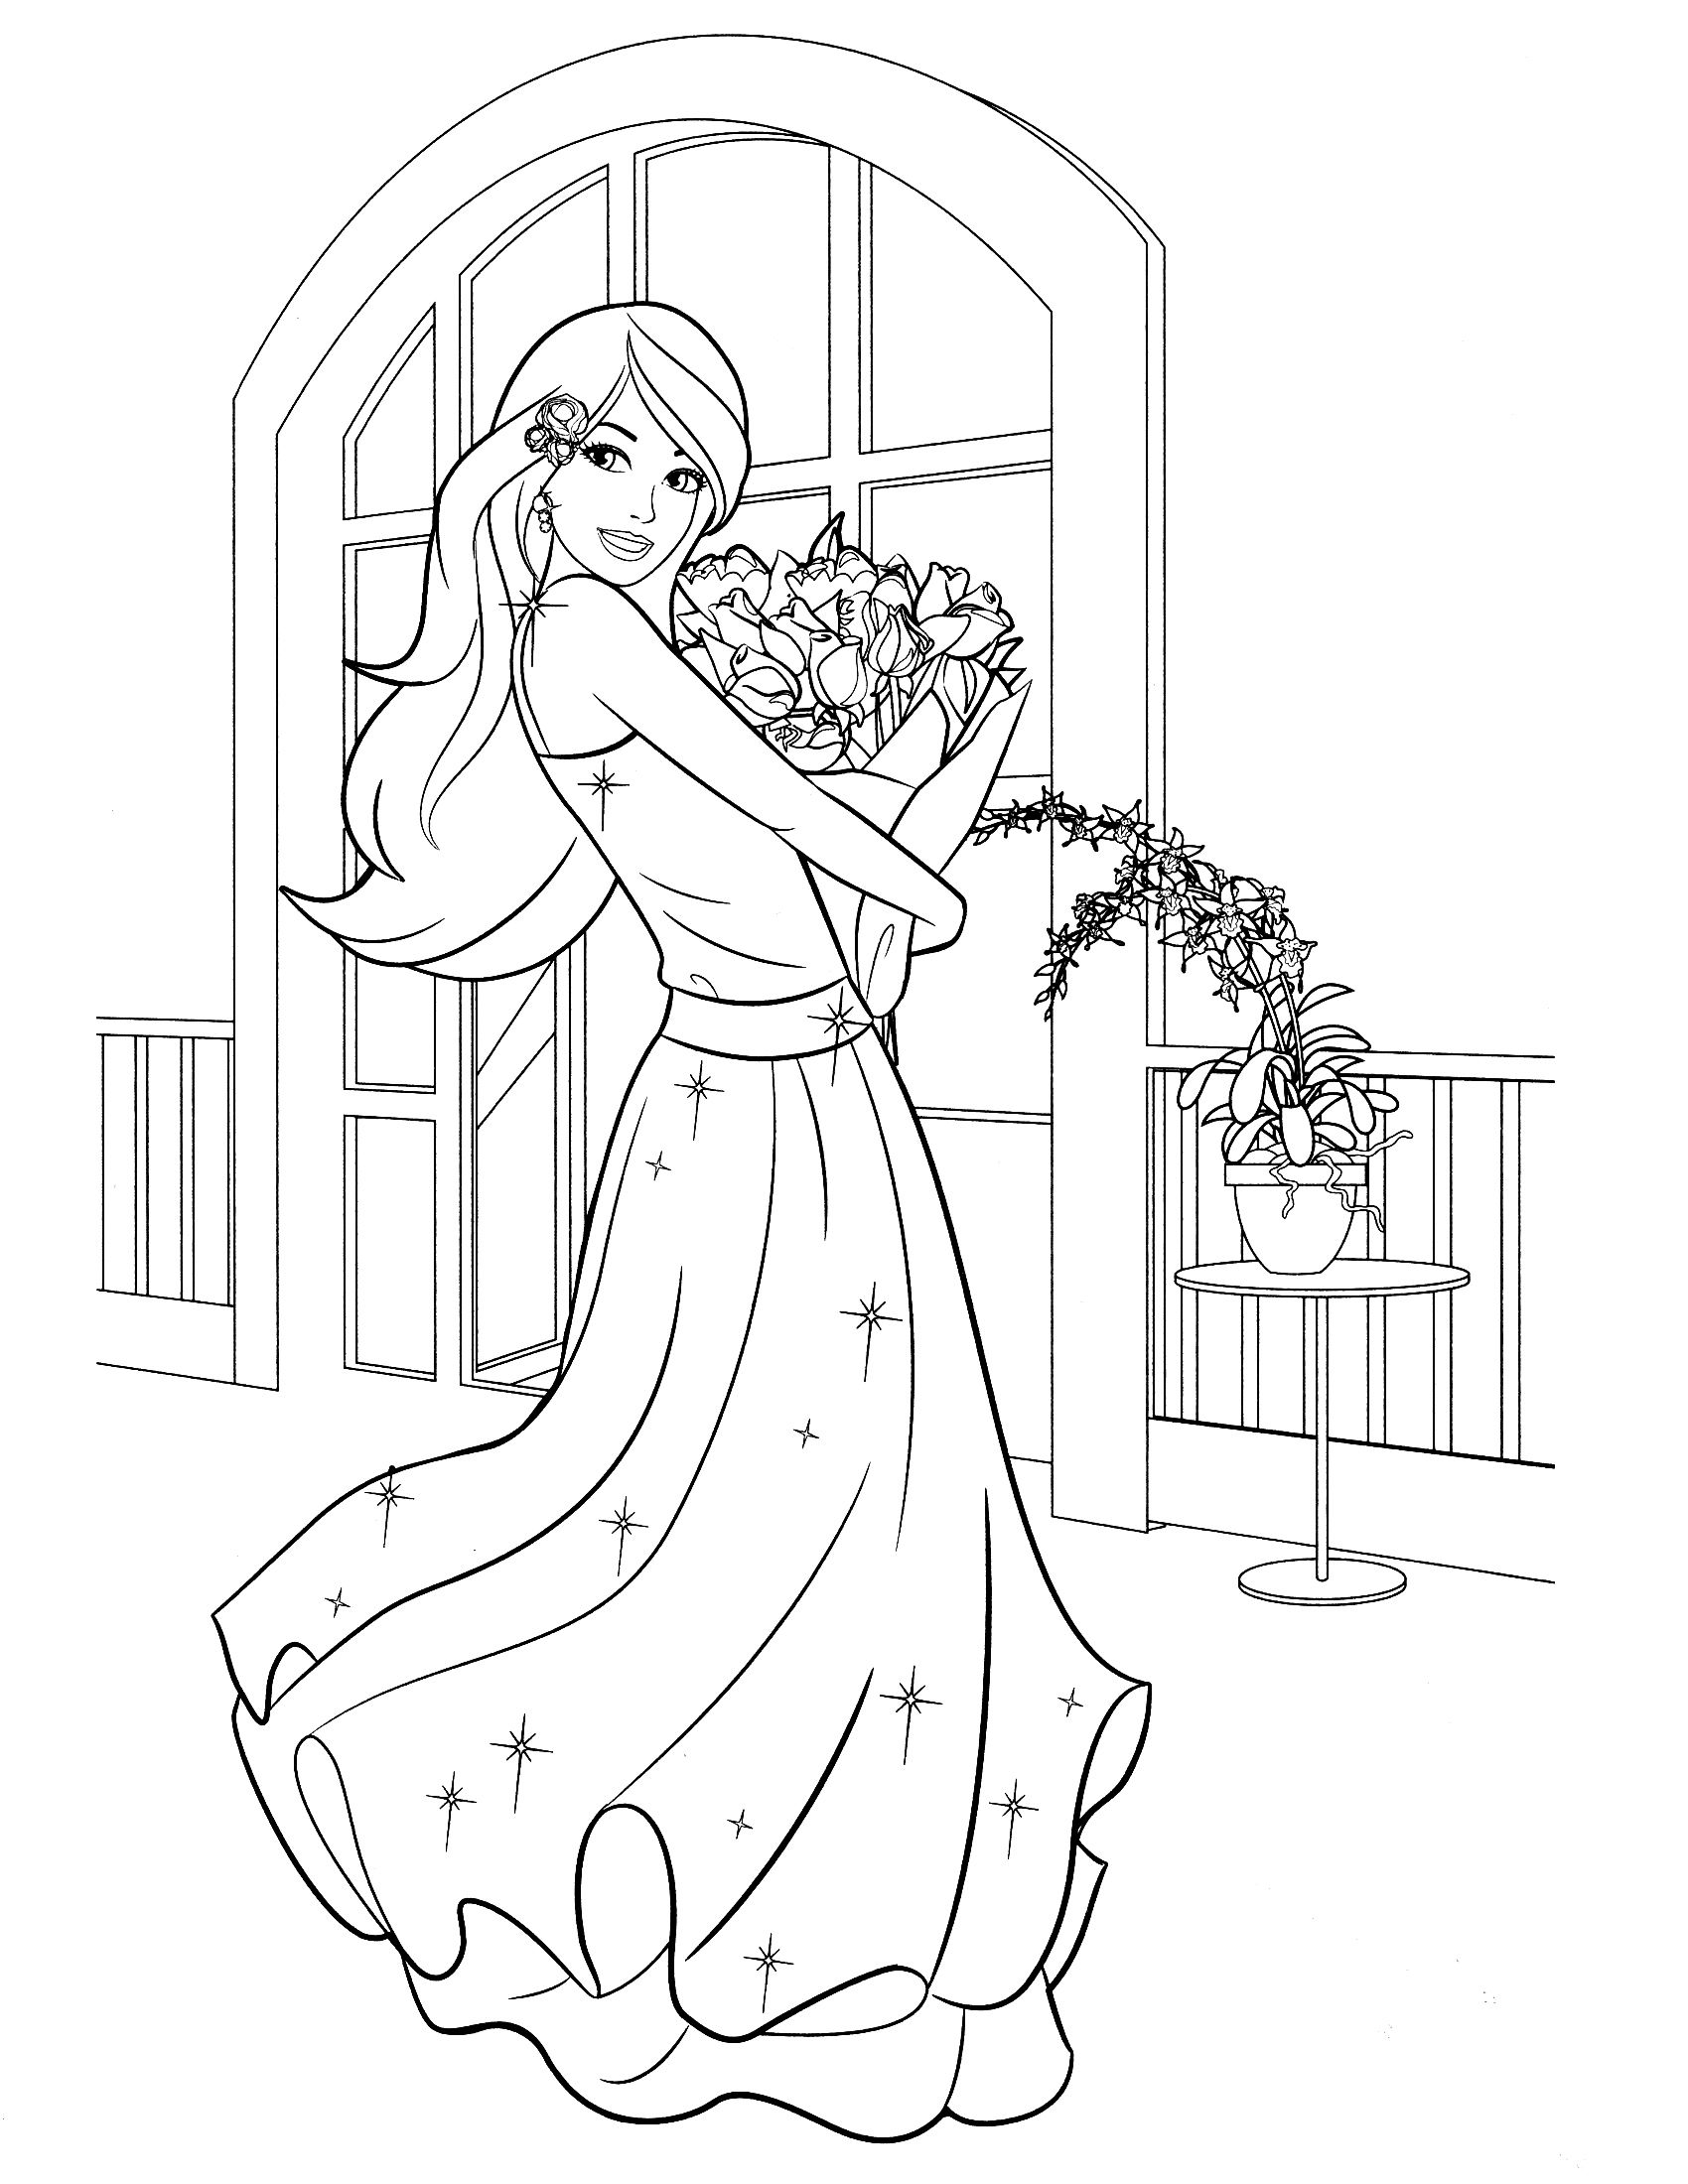 barbie coloring pages - Google-søgning | Noanne fête | Pinterest ...